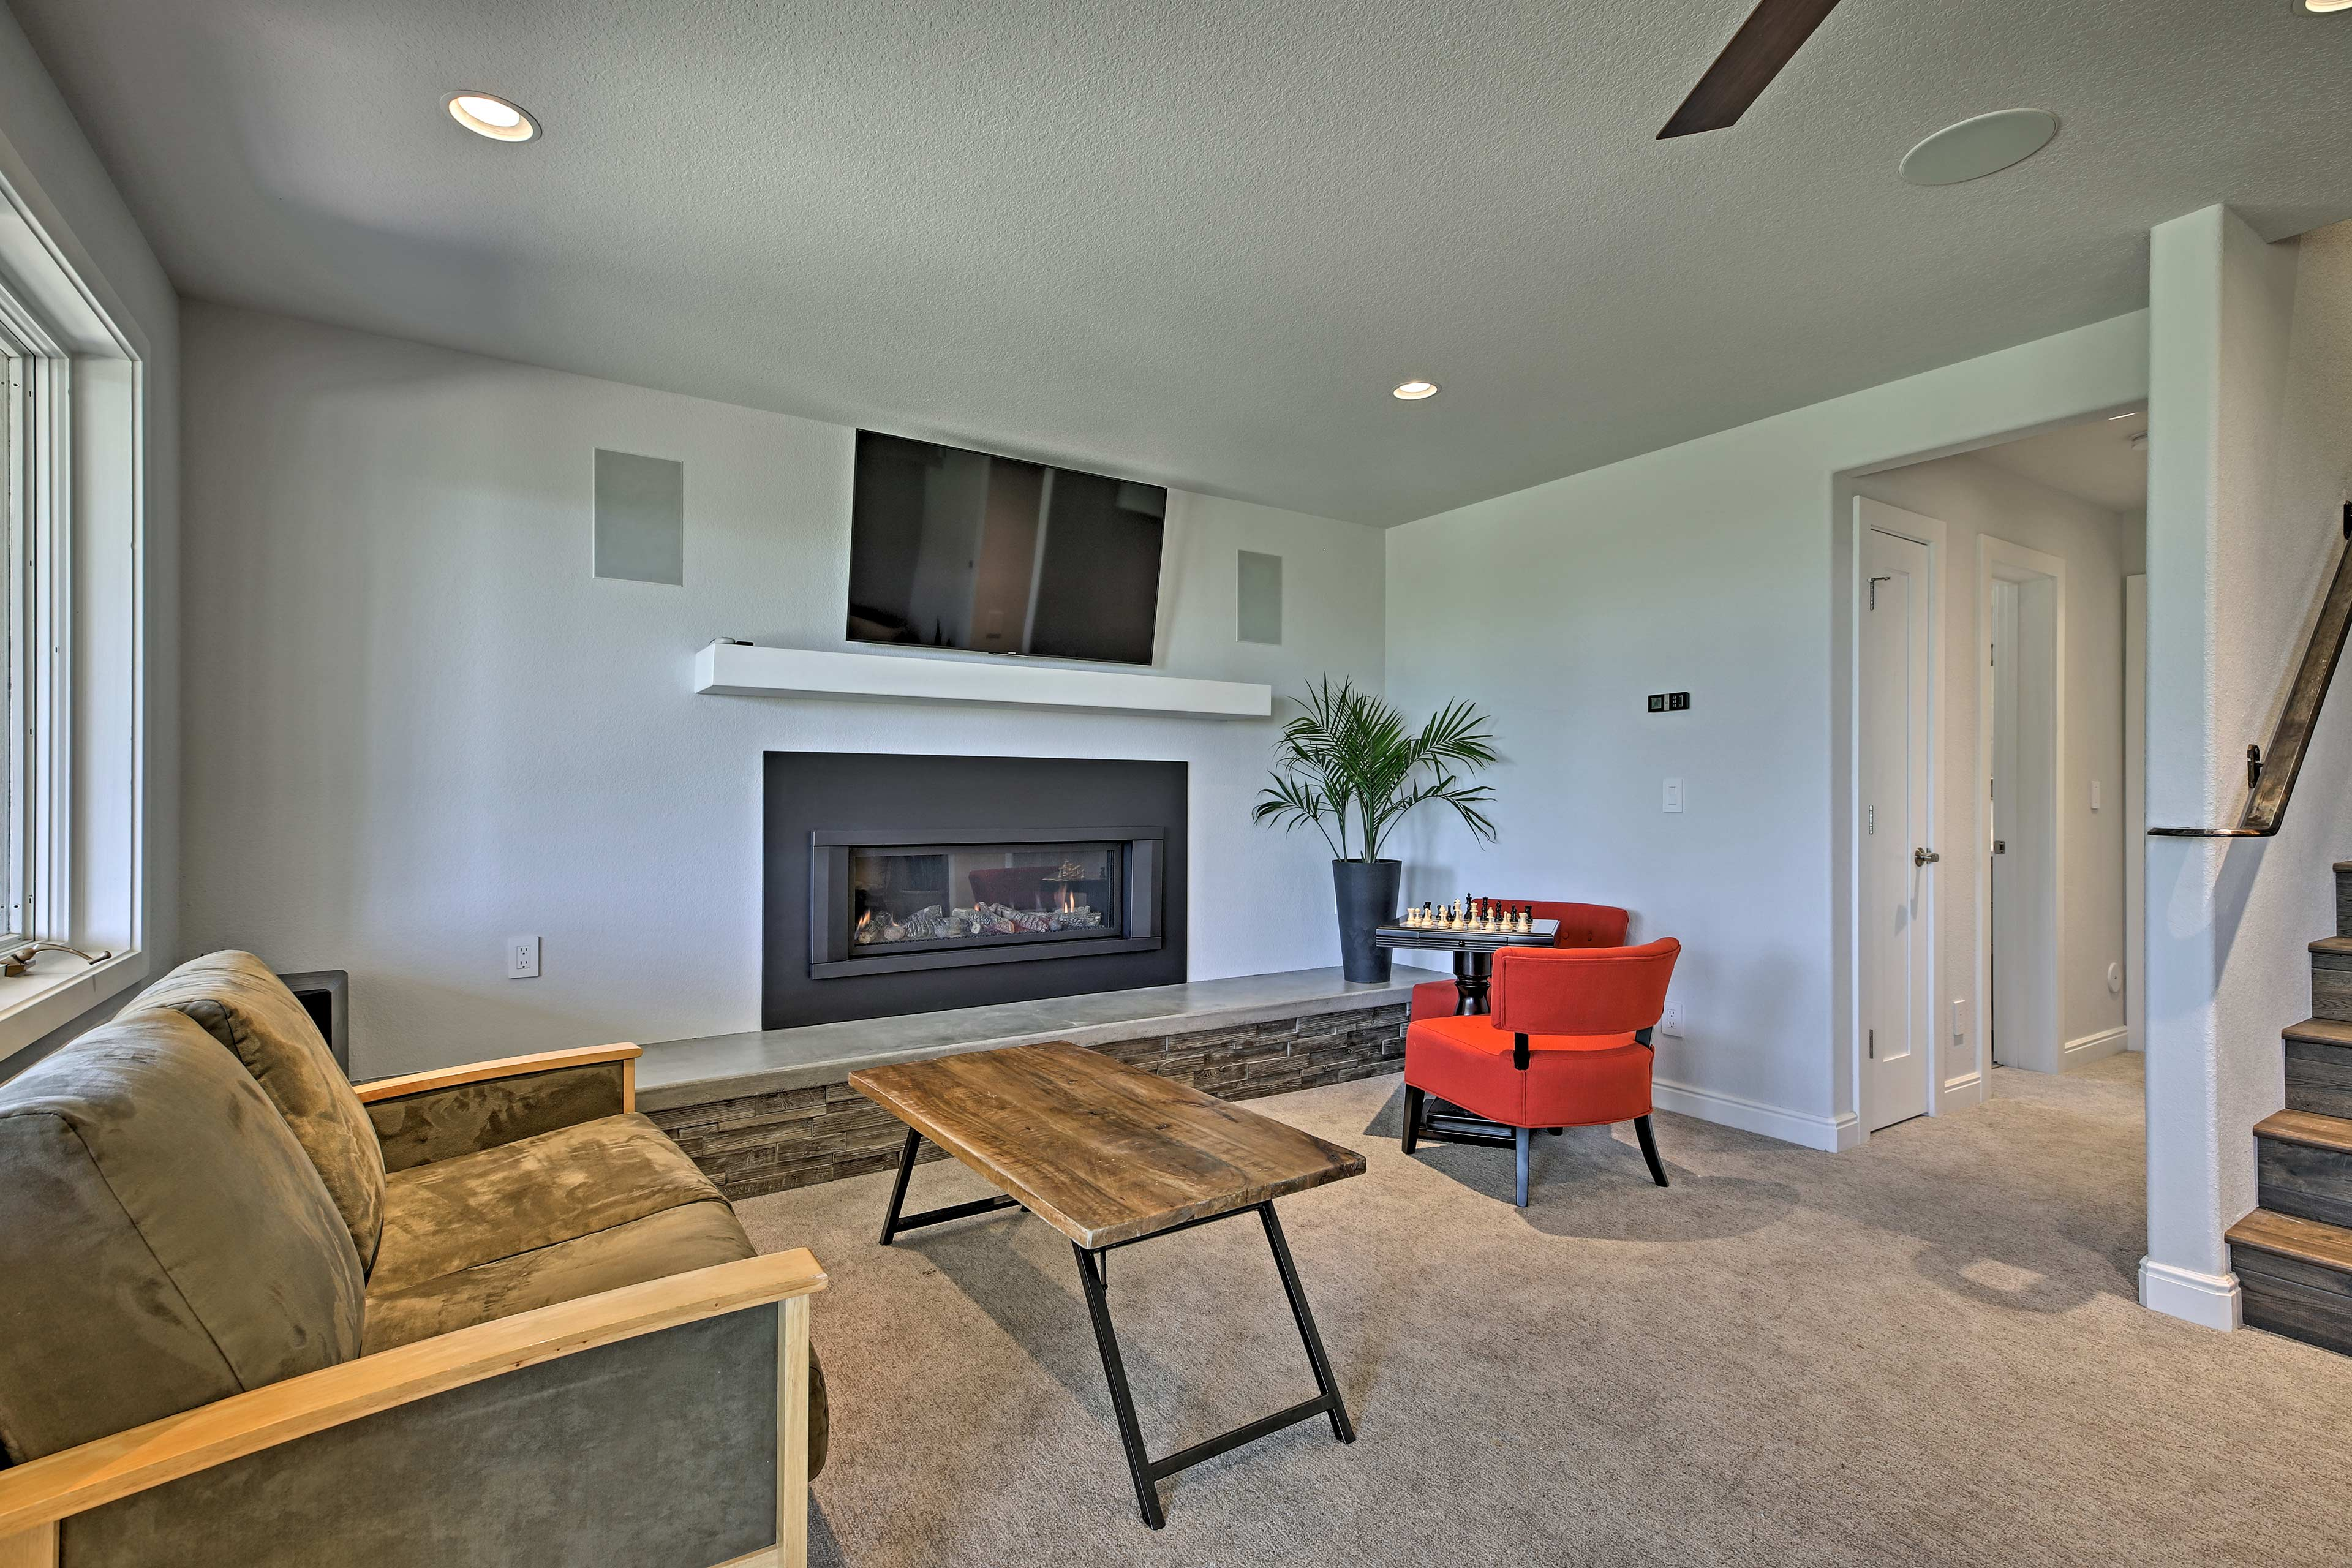 Turn on the remote-controlled fireplace to heat up the lower living room!